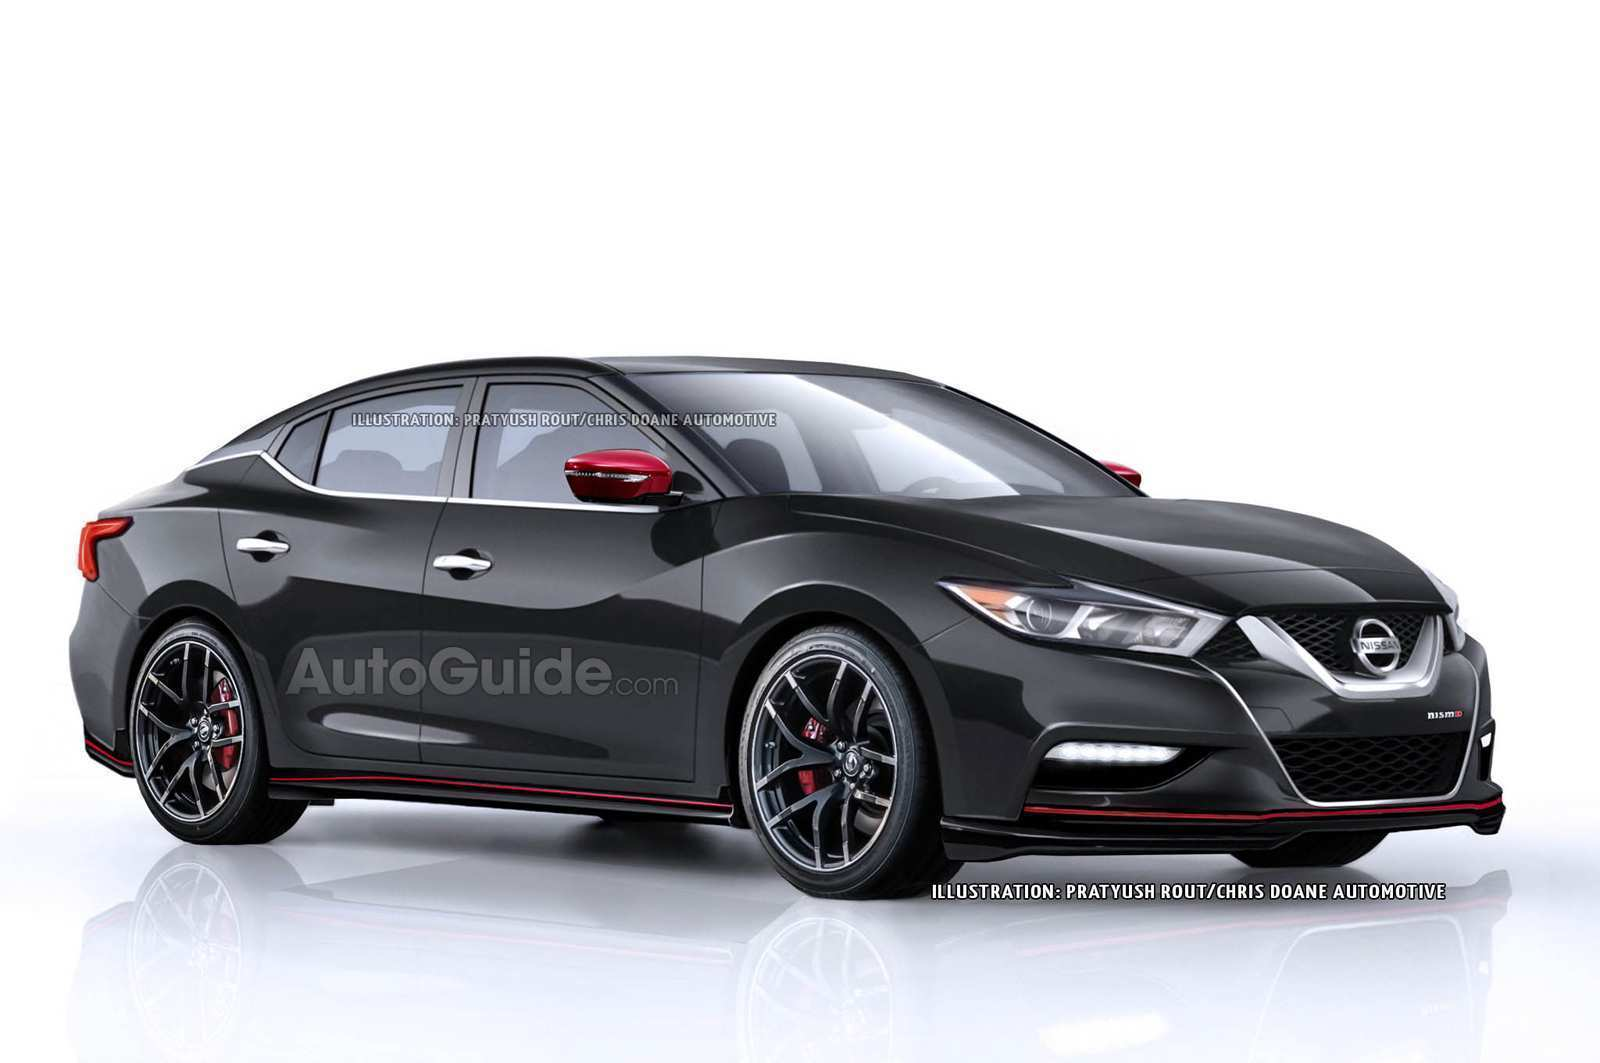 55 New 2020 Nissan Maxima Nismo Performance and New Engine for 2020 Nissan Maxima Nismo